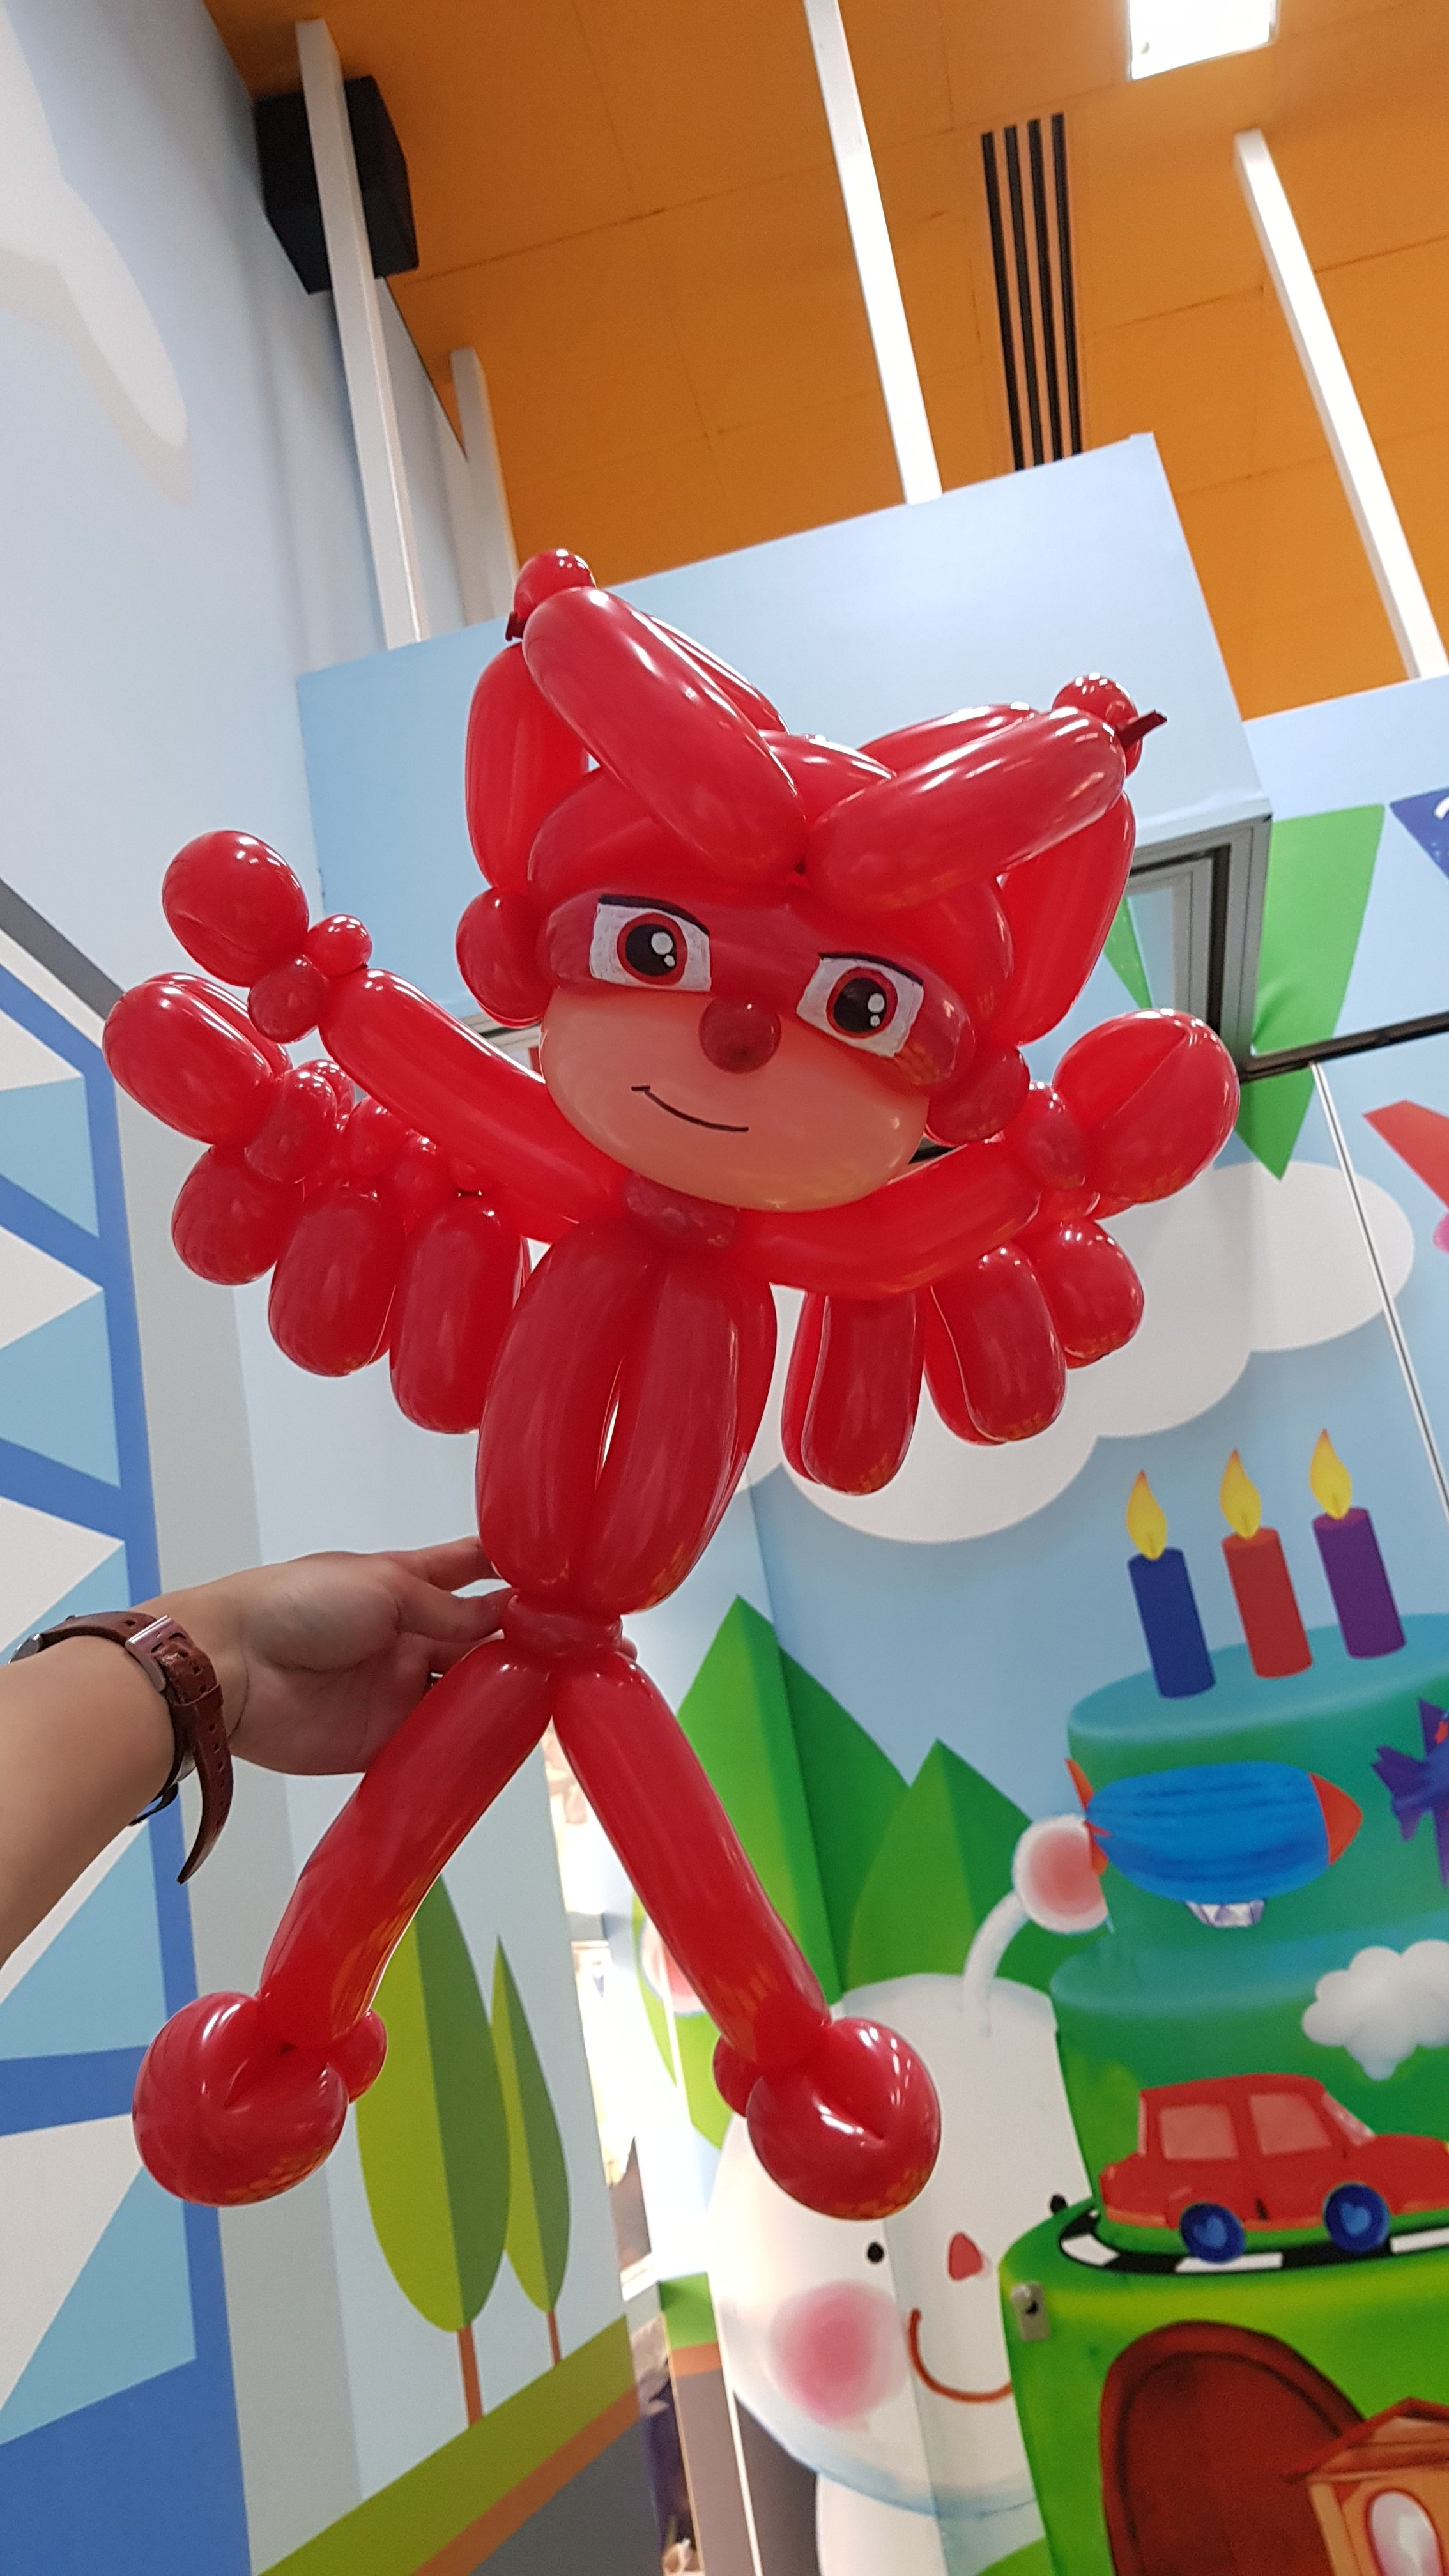 , Owlette from PJ mask Balloon sculpture!, Singapore Balloon Decoration Services - Balloon Workshop and Balloon Sculpting